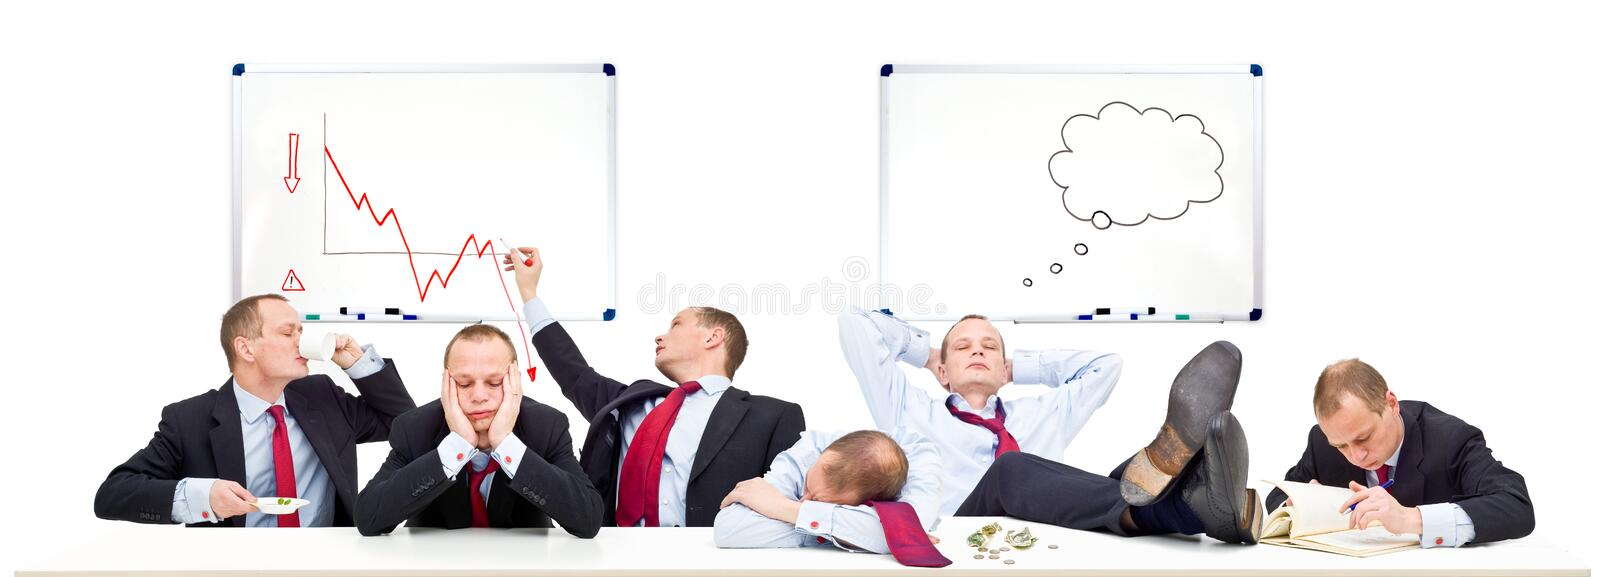 Boardroom on a slow day royalty free stock photo